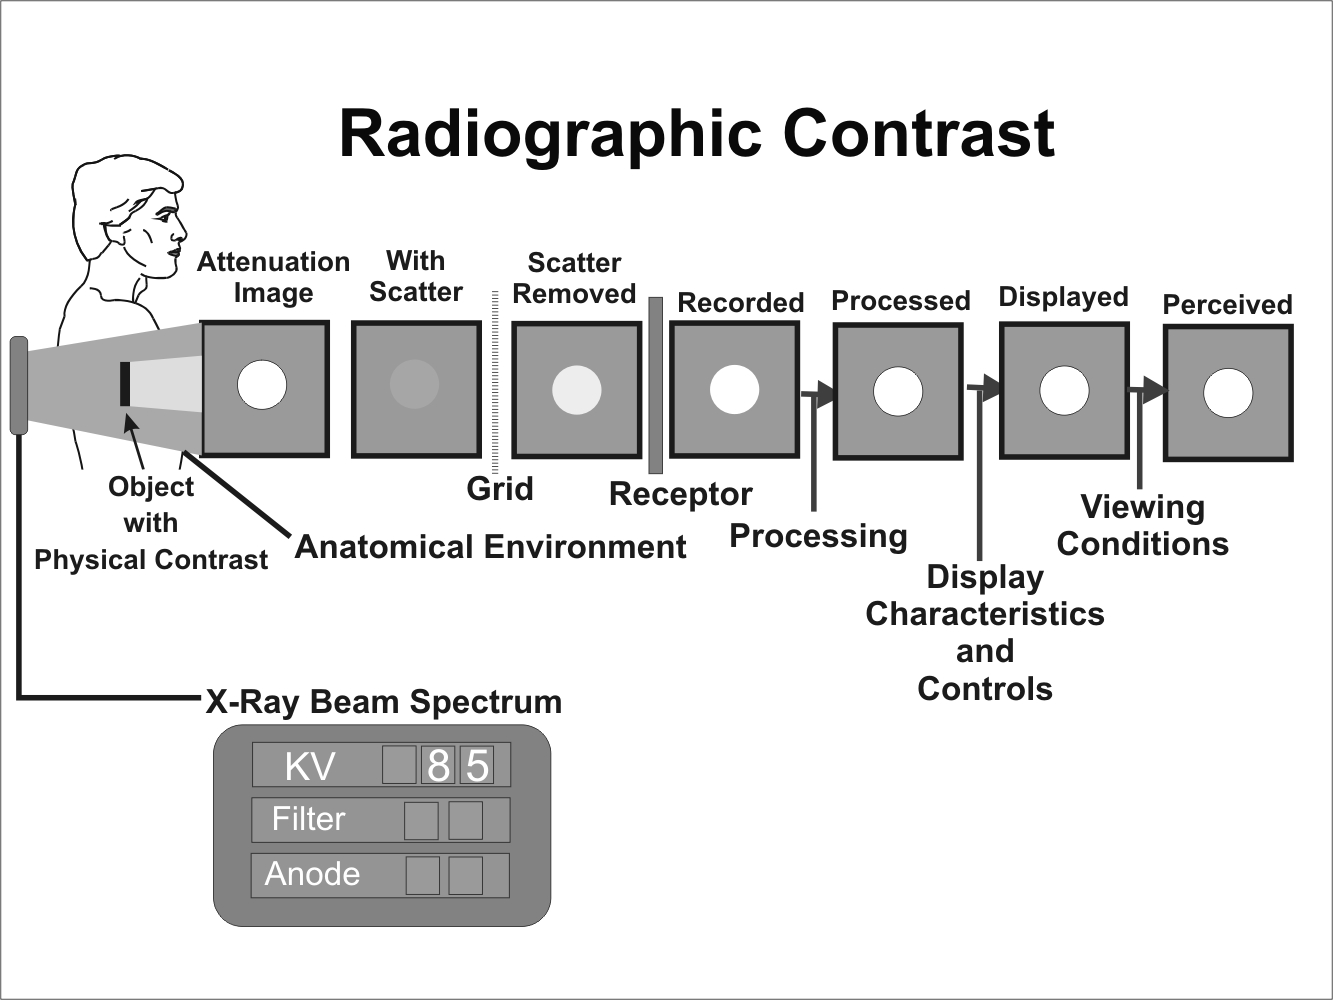 Penetration vs exposure in radiology opinion